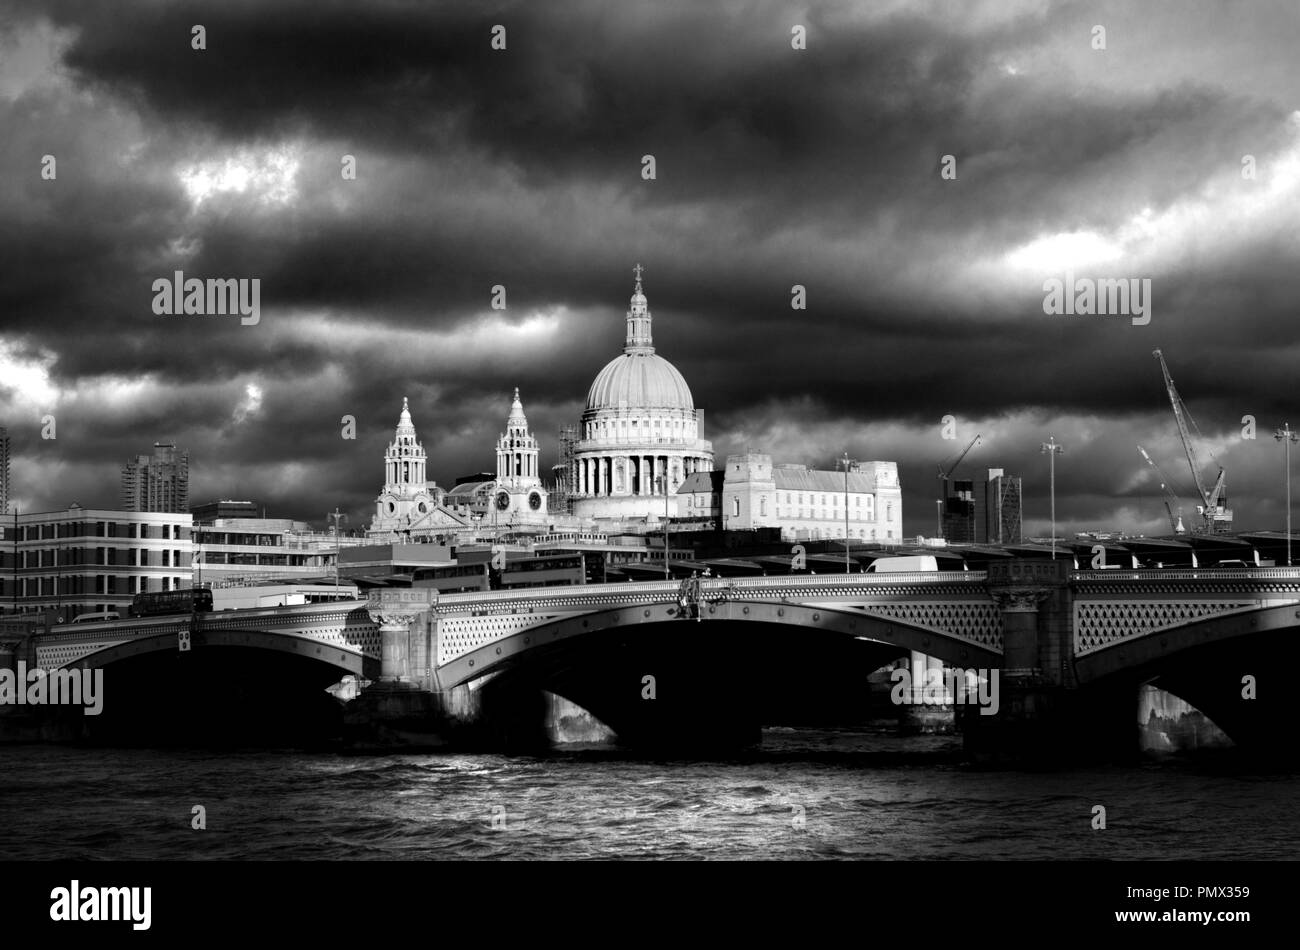 London, England, UK. St Paul's Cathedral, River Thames and Blackfriars Bridge on a dramatic cloudy day in December - Stock Image